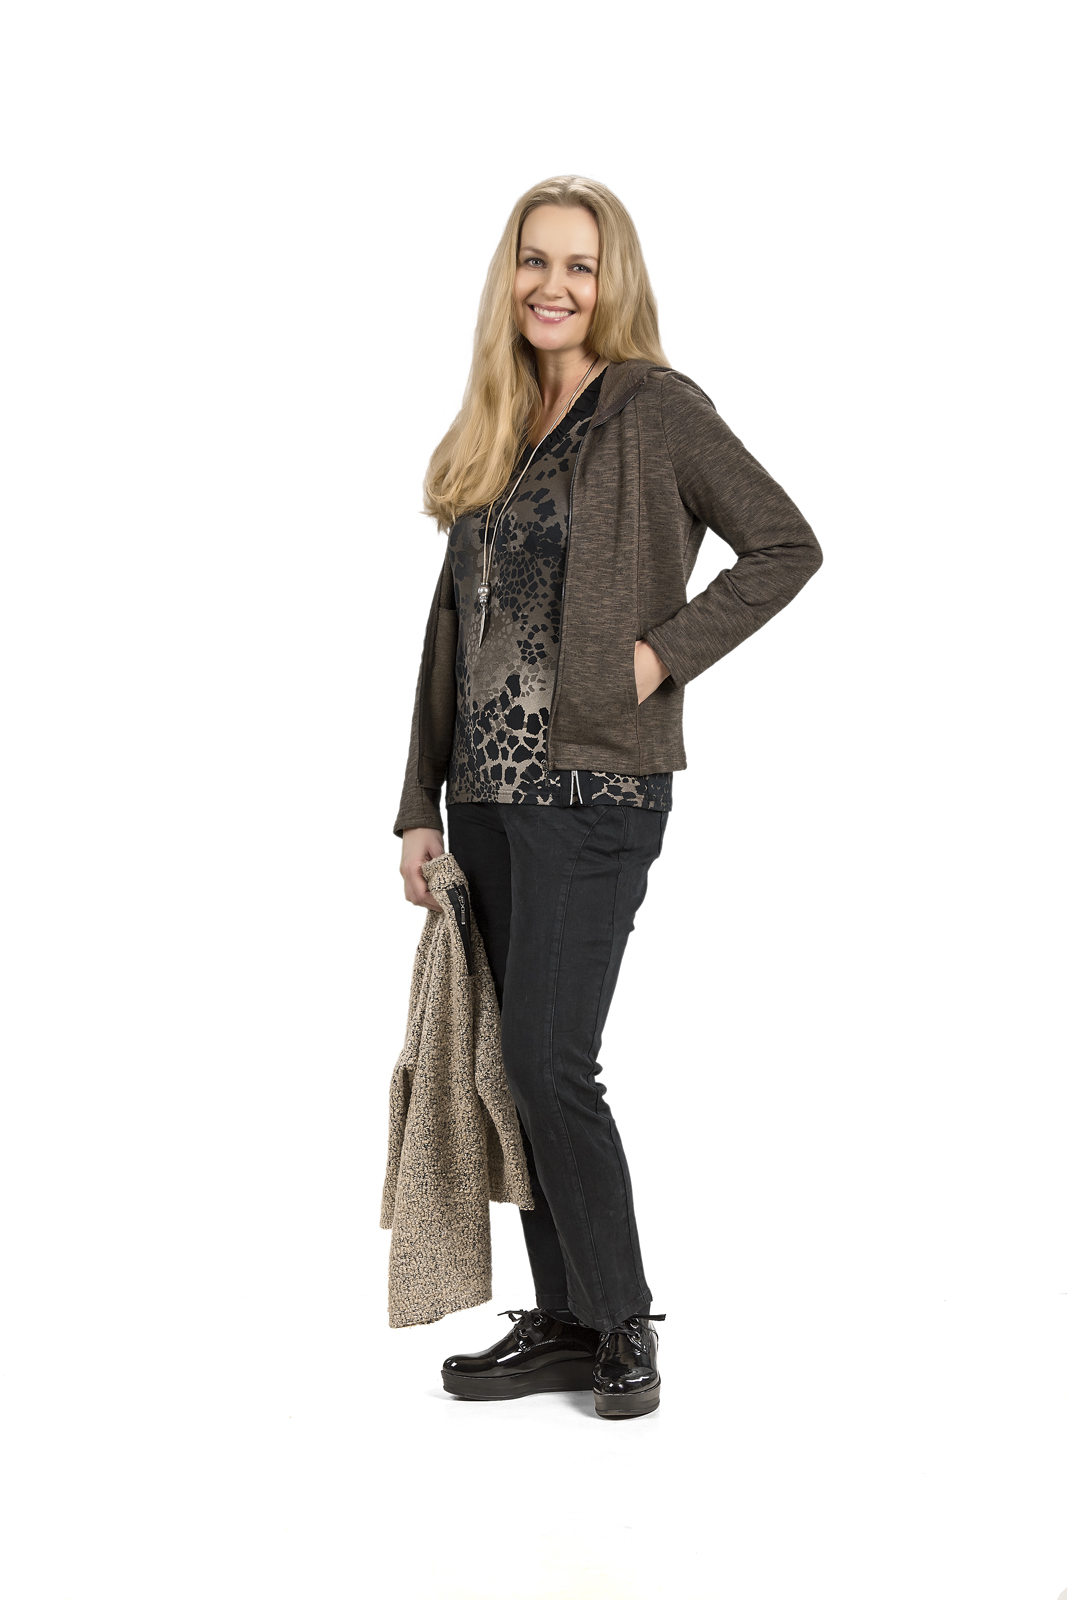 C3290 Cardigan – C4792 Blouse – C5411 Trousers (C8936 Blouse)